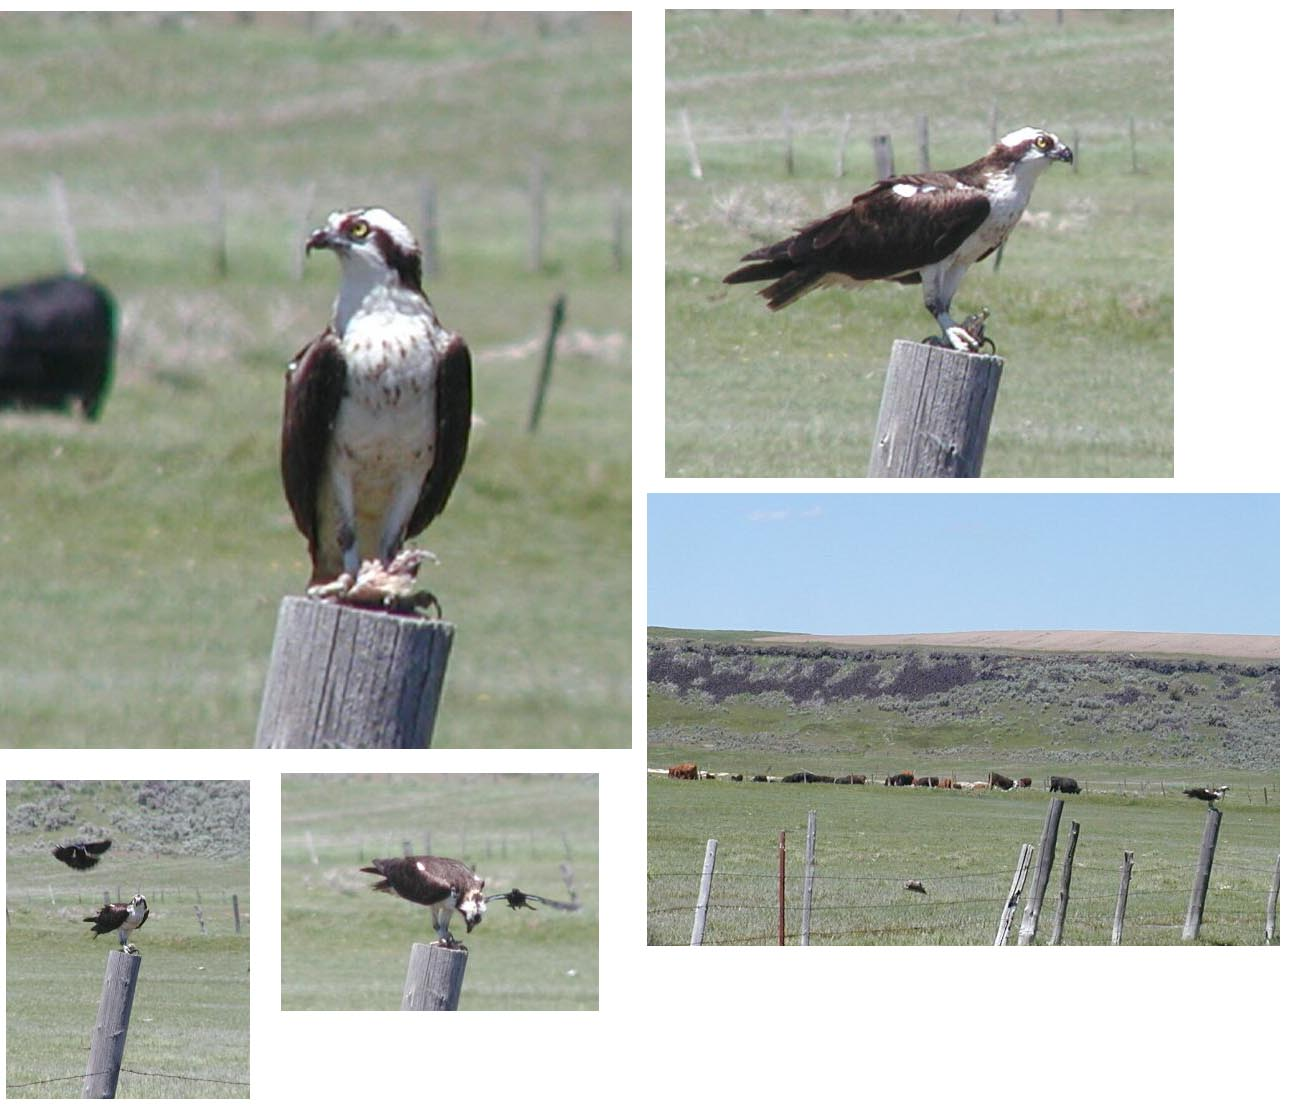 Multiple photographs of an osprey perched on a fence post at a cattle farm